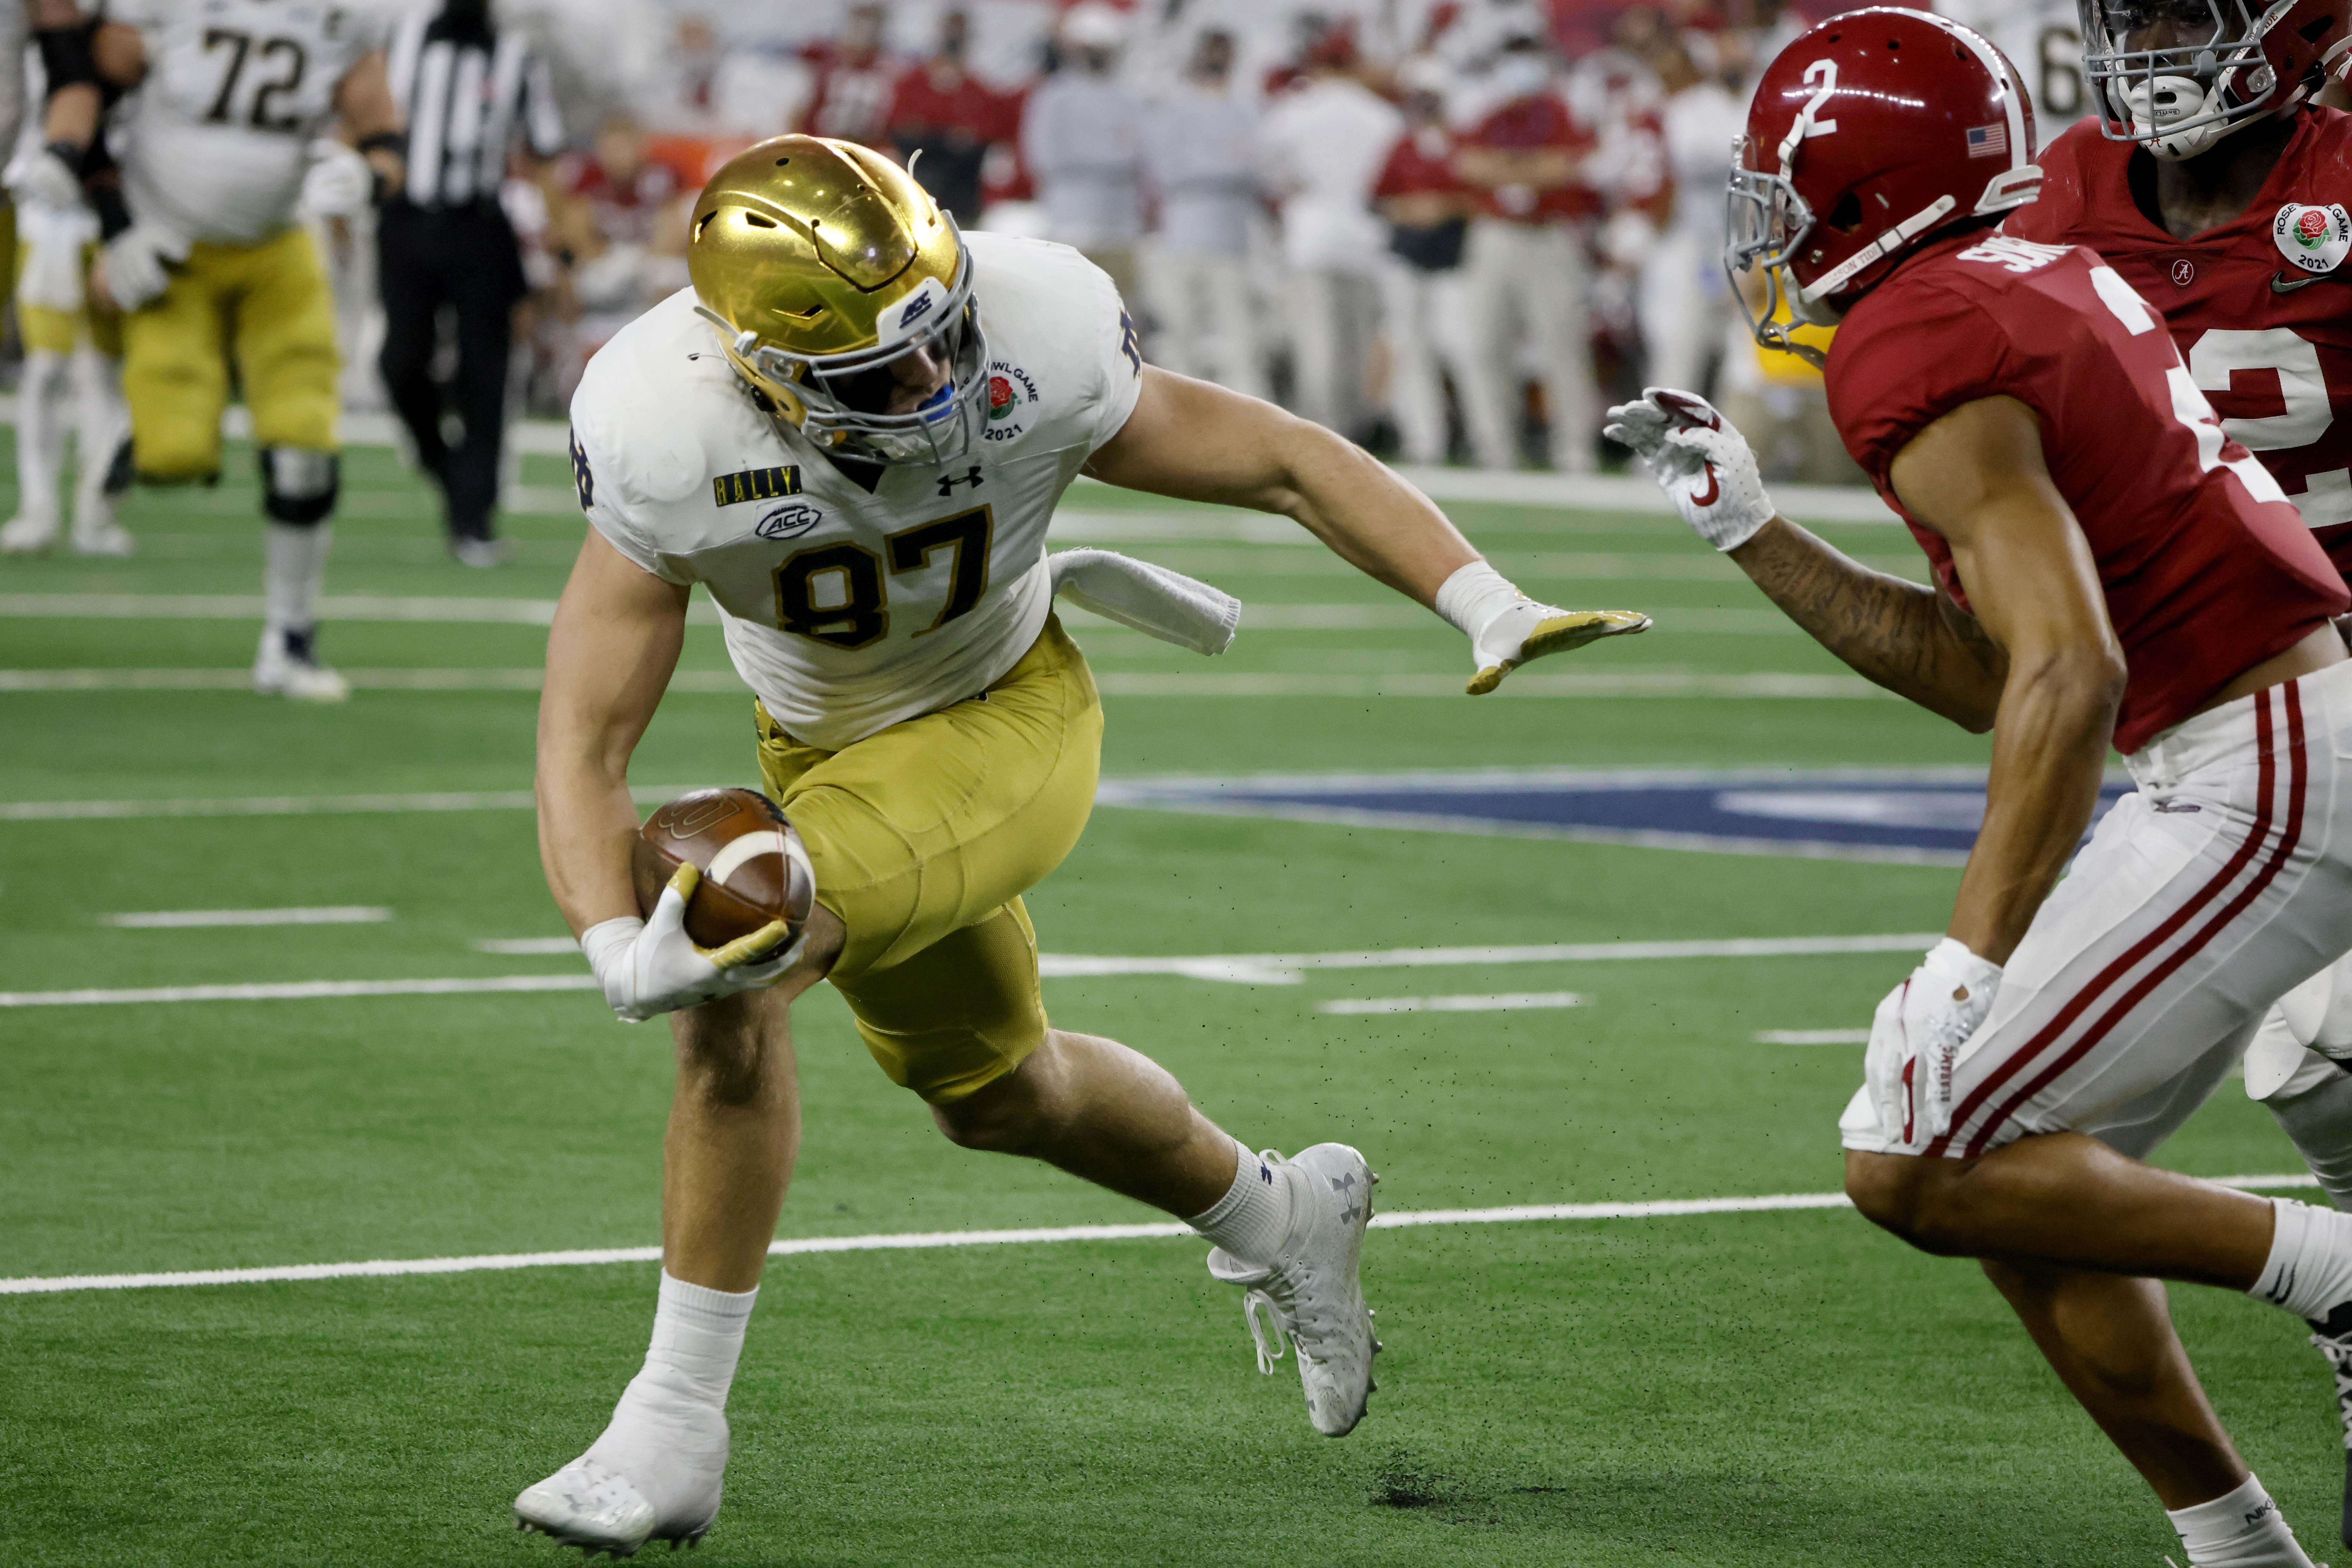 Notre Dame tight end Michael Mayer is coming off a 42-catch debut season in which he tied for the team lead in receptions and made multiple freshman All-America teams.